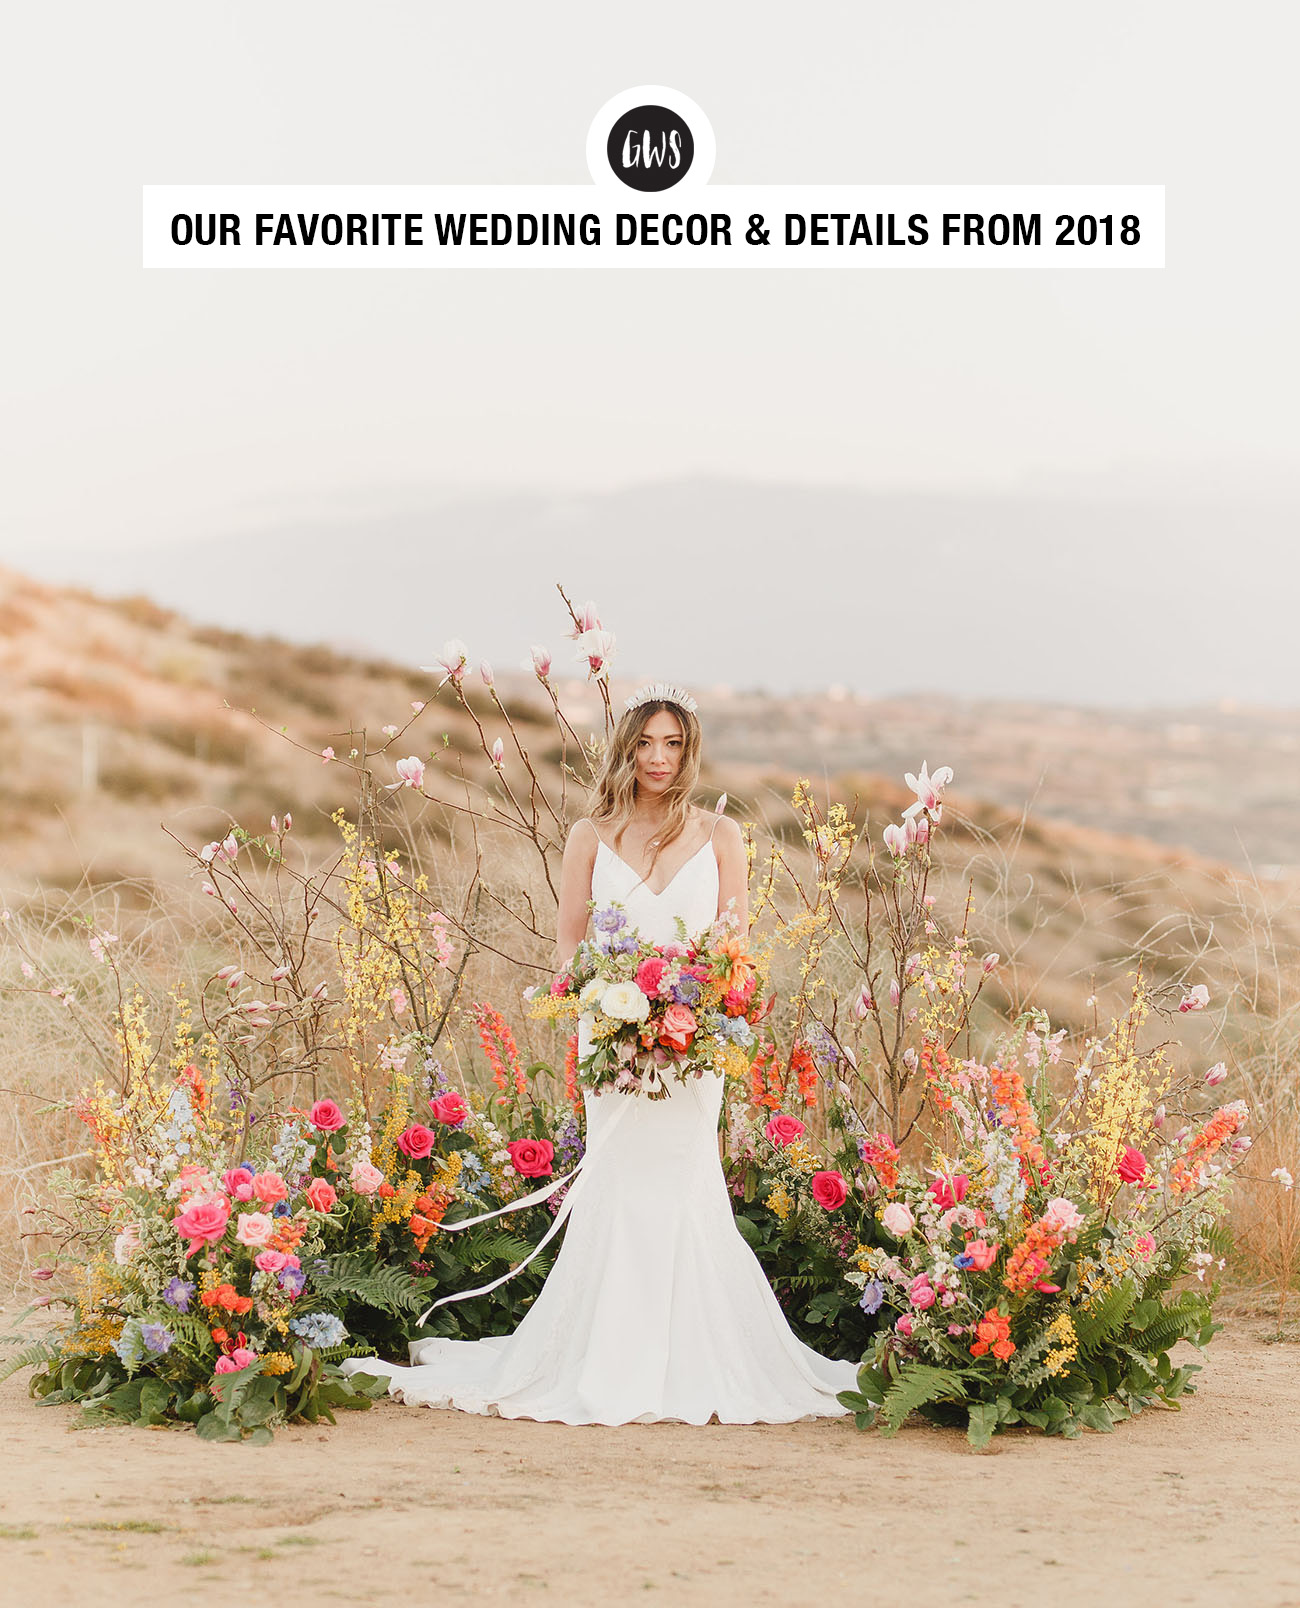 favorite wedding decor + details from Green Wedding Shoes of 2018